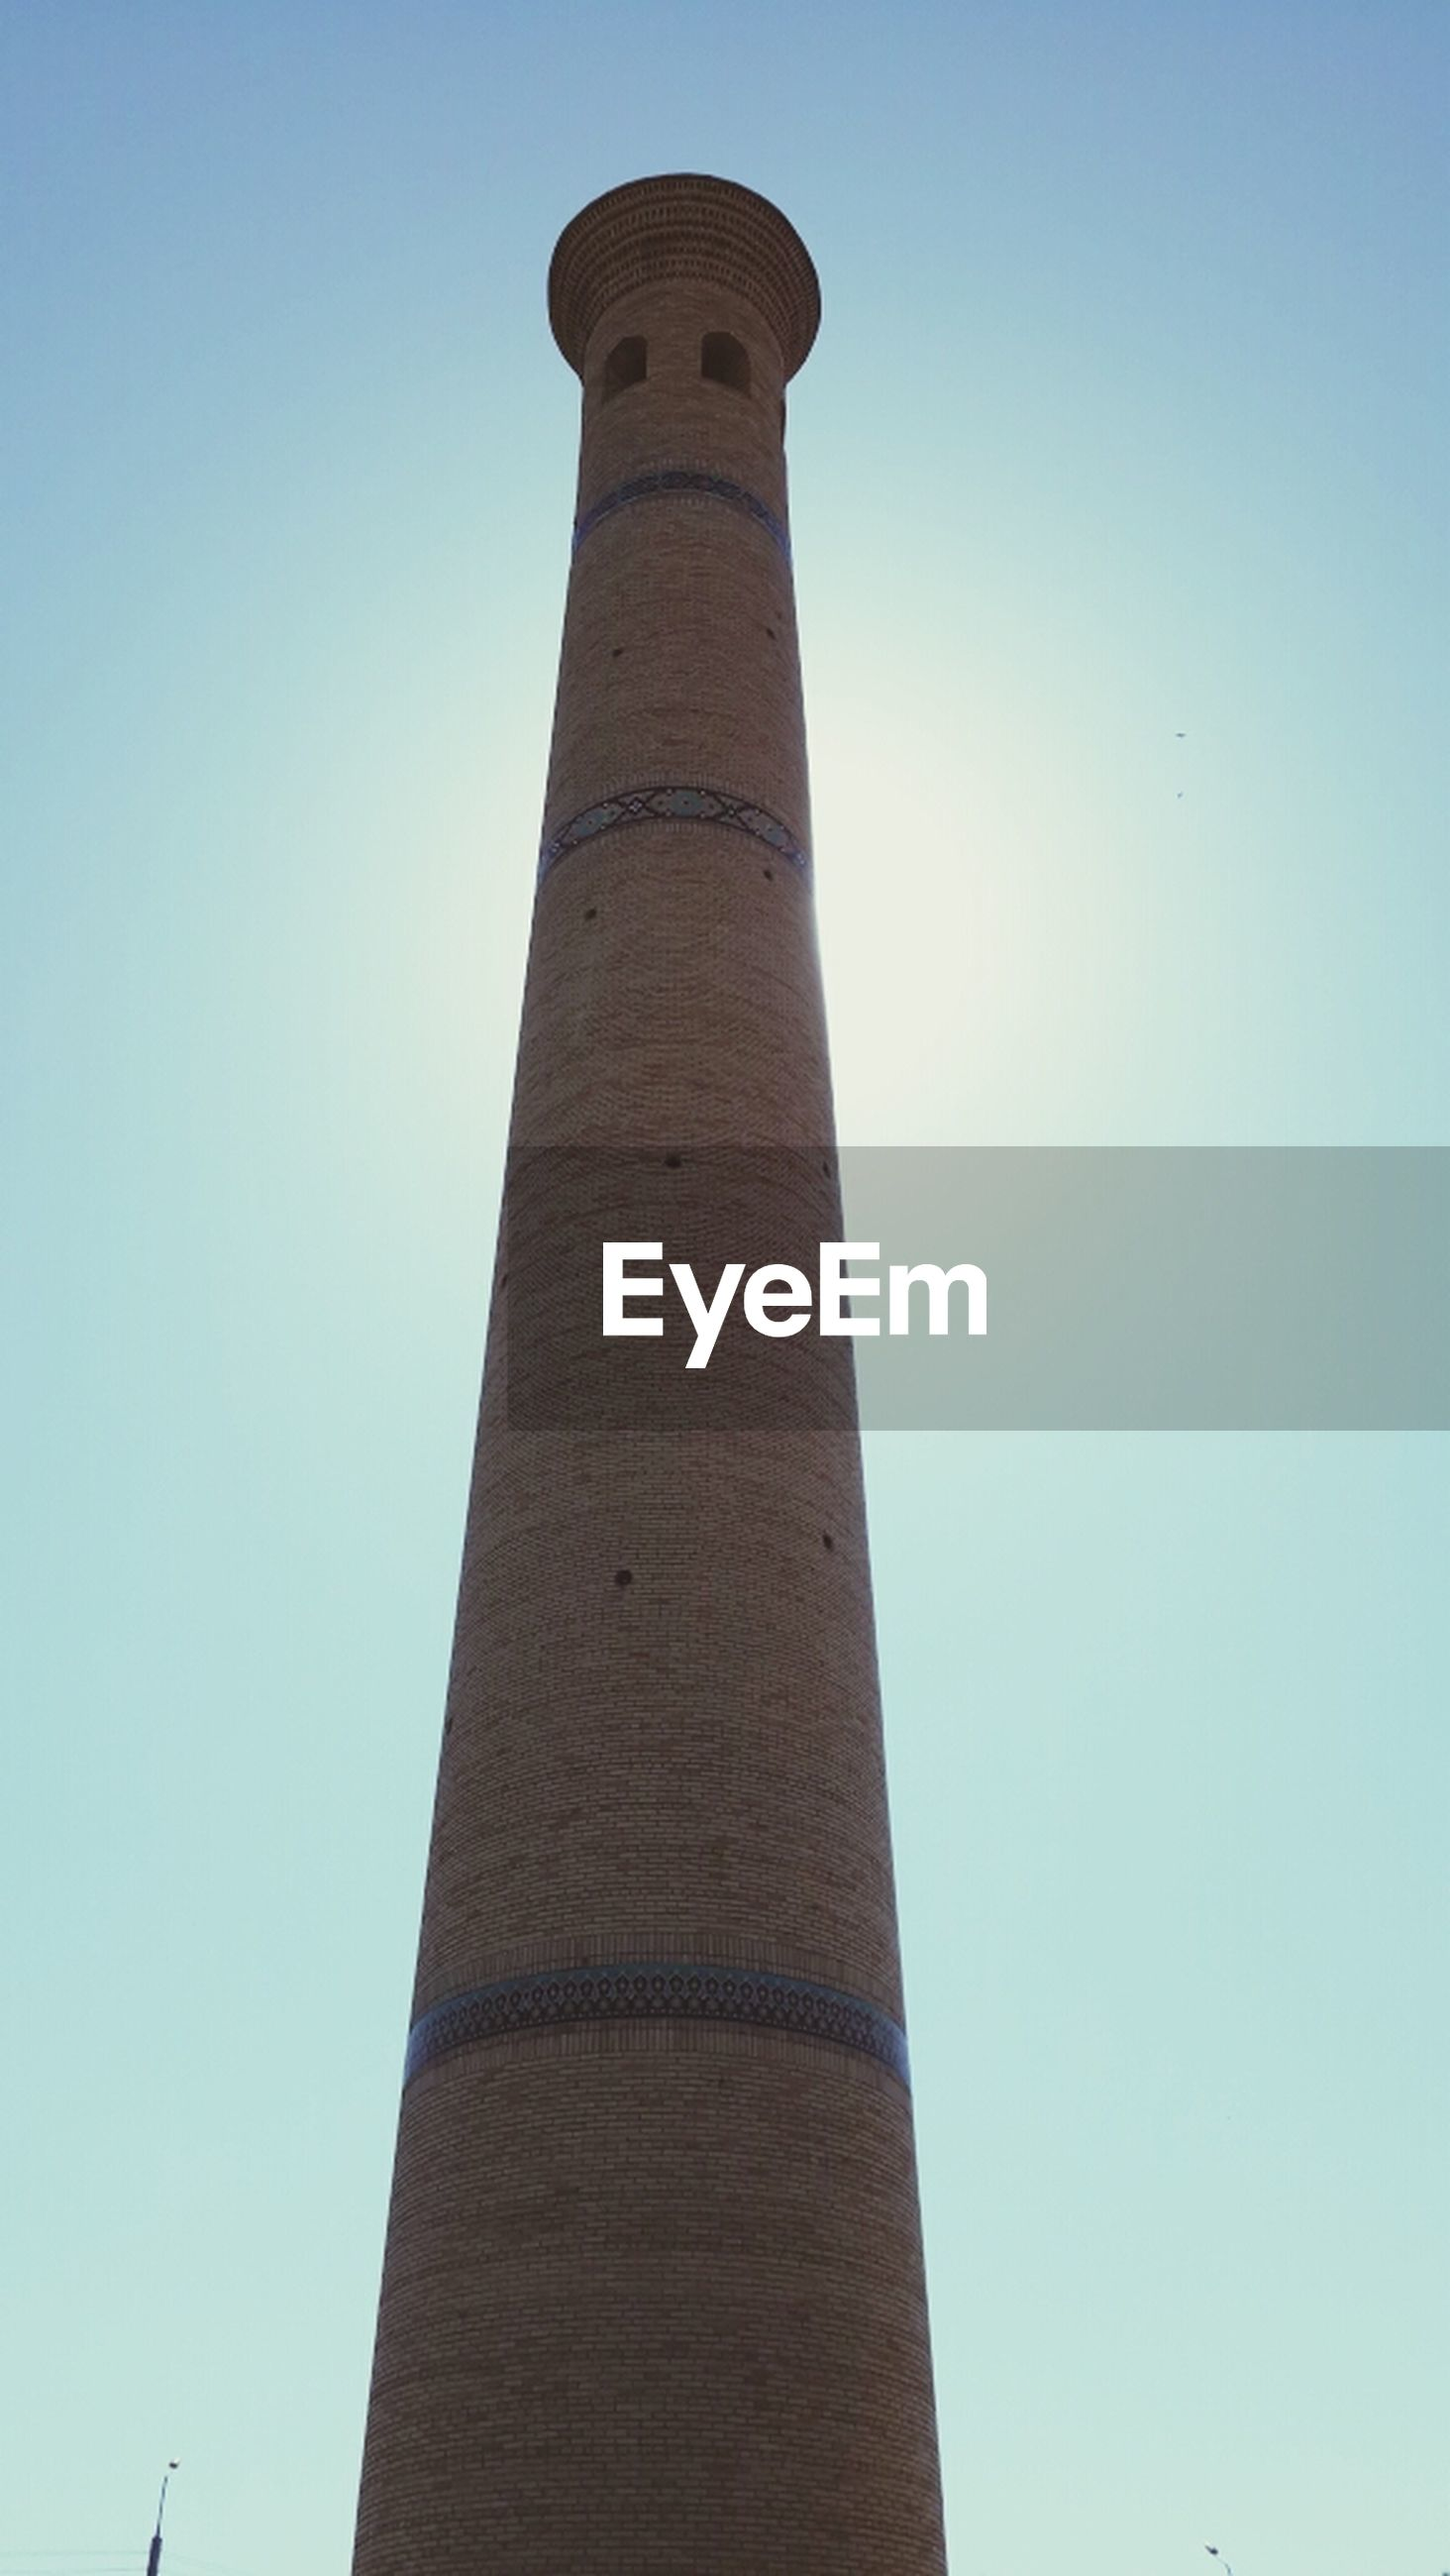 low angle view, architecture, built structure, clear sky, tower, tall - high, building exterior, blue, copy space, travel destinations, famous place, international landmark, tall, tourism, travel, history, no people, smoke stack, day, outdoors